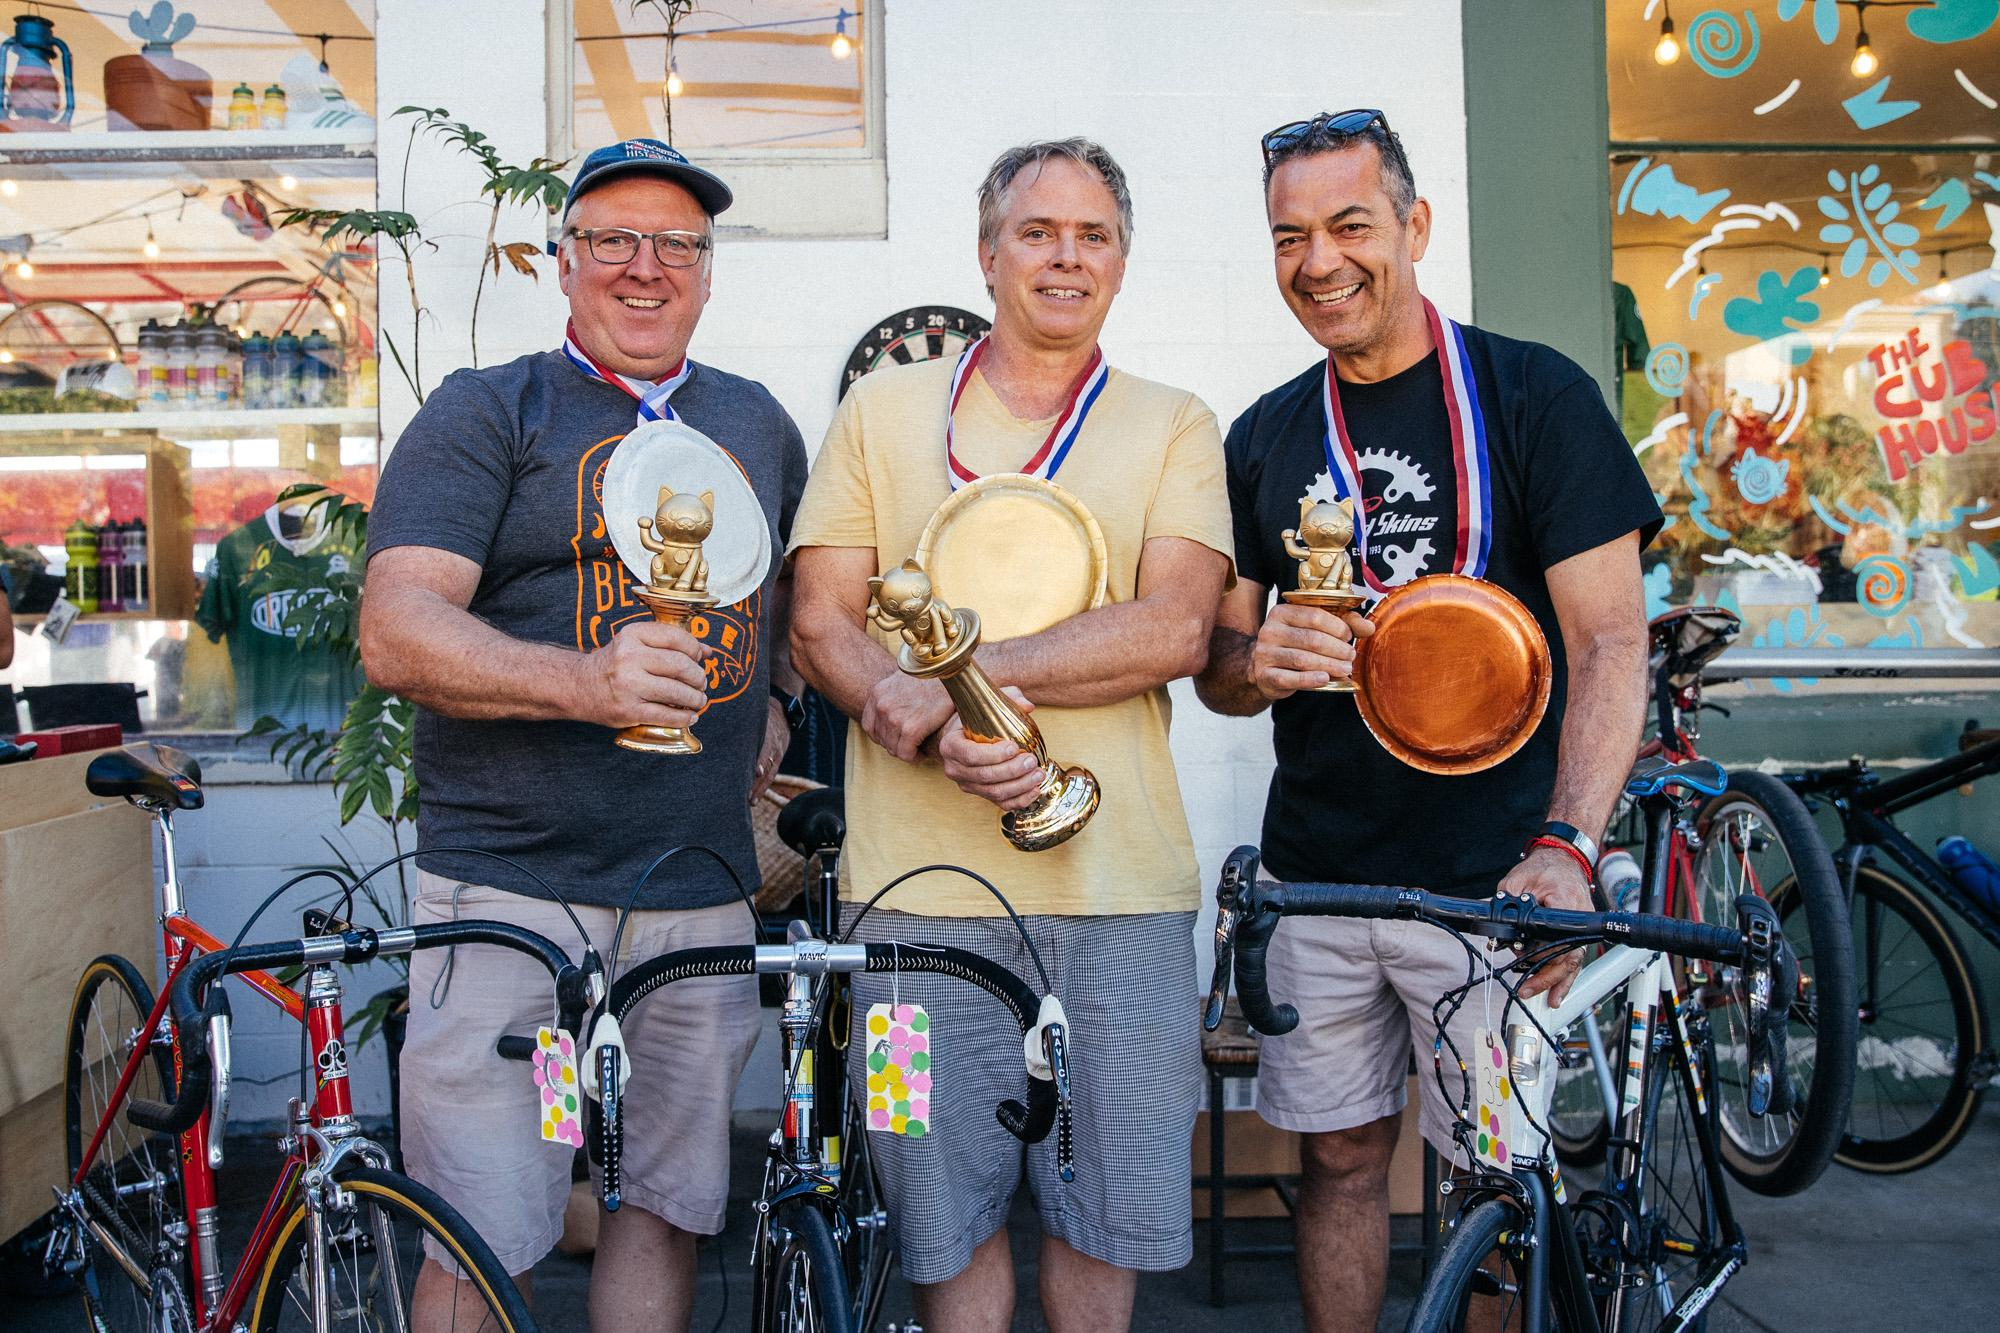 Winners of the Bicycle Show